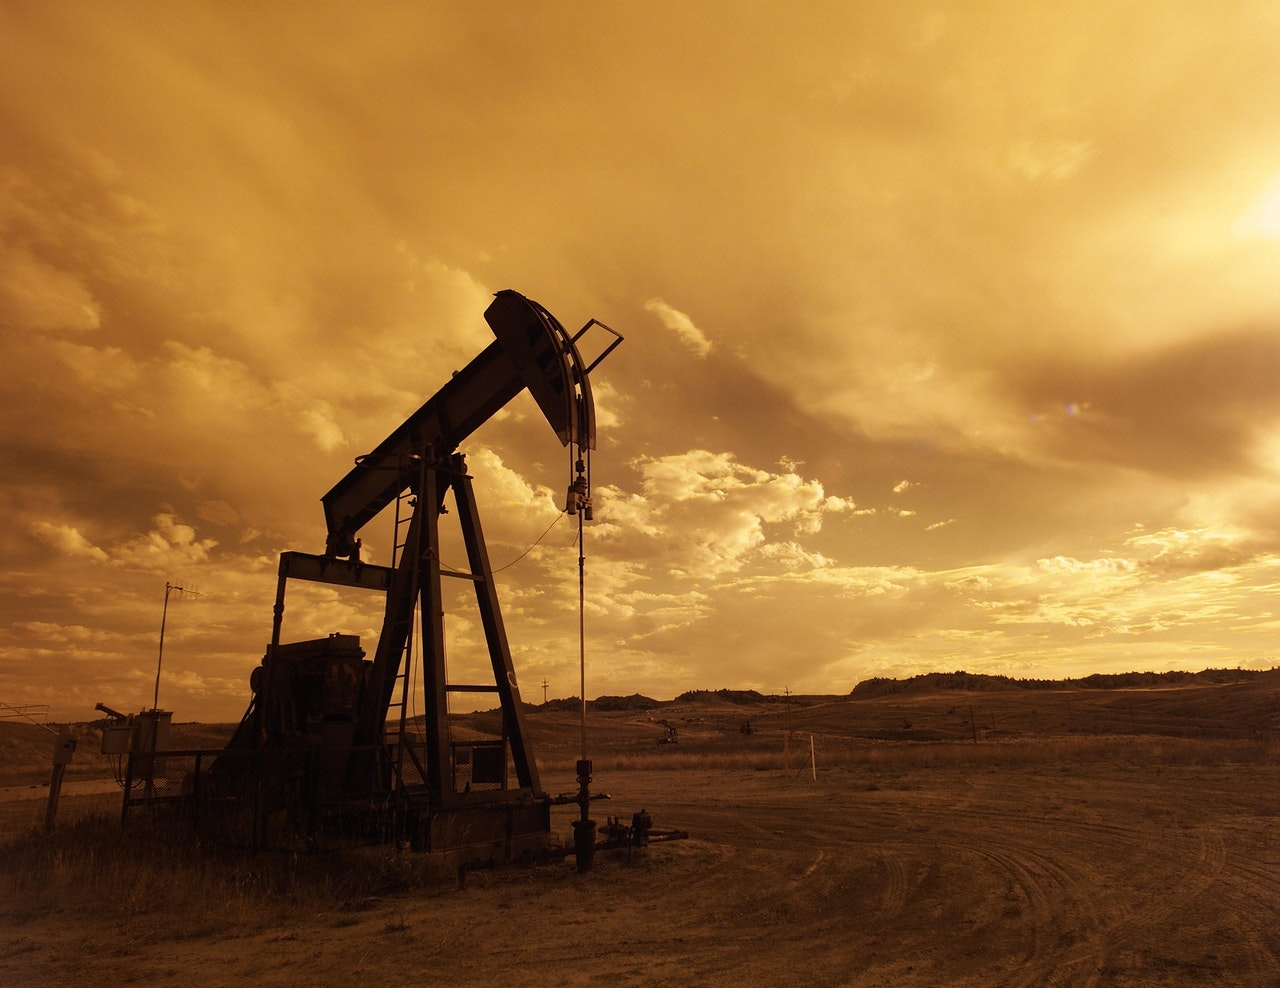 Photograph of an oil field at sunset shale.